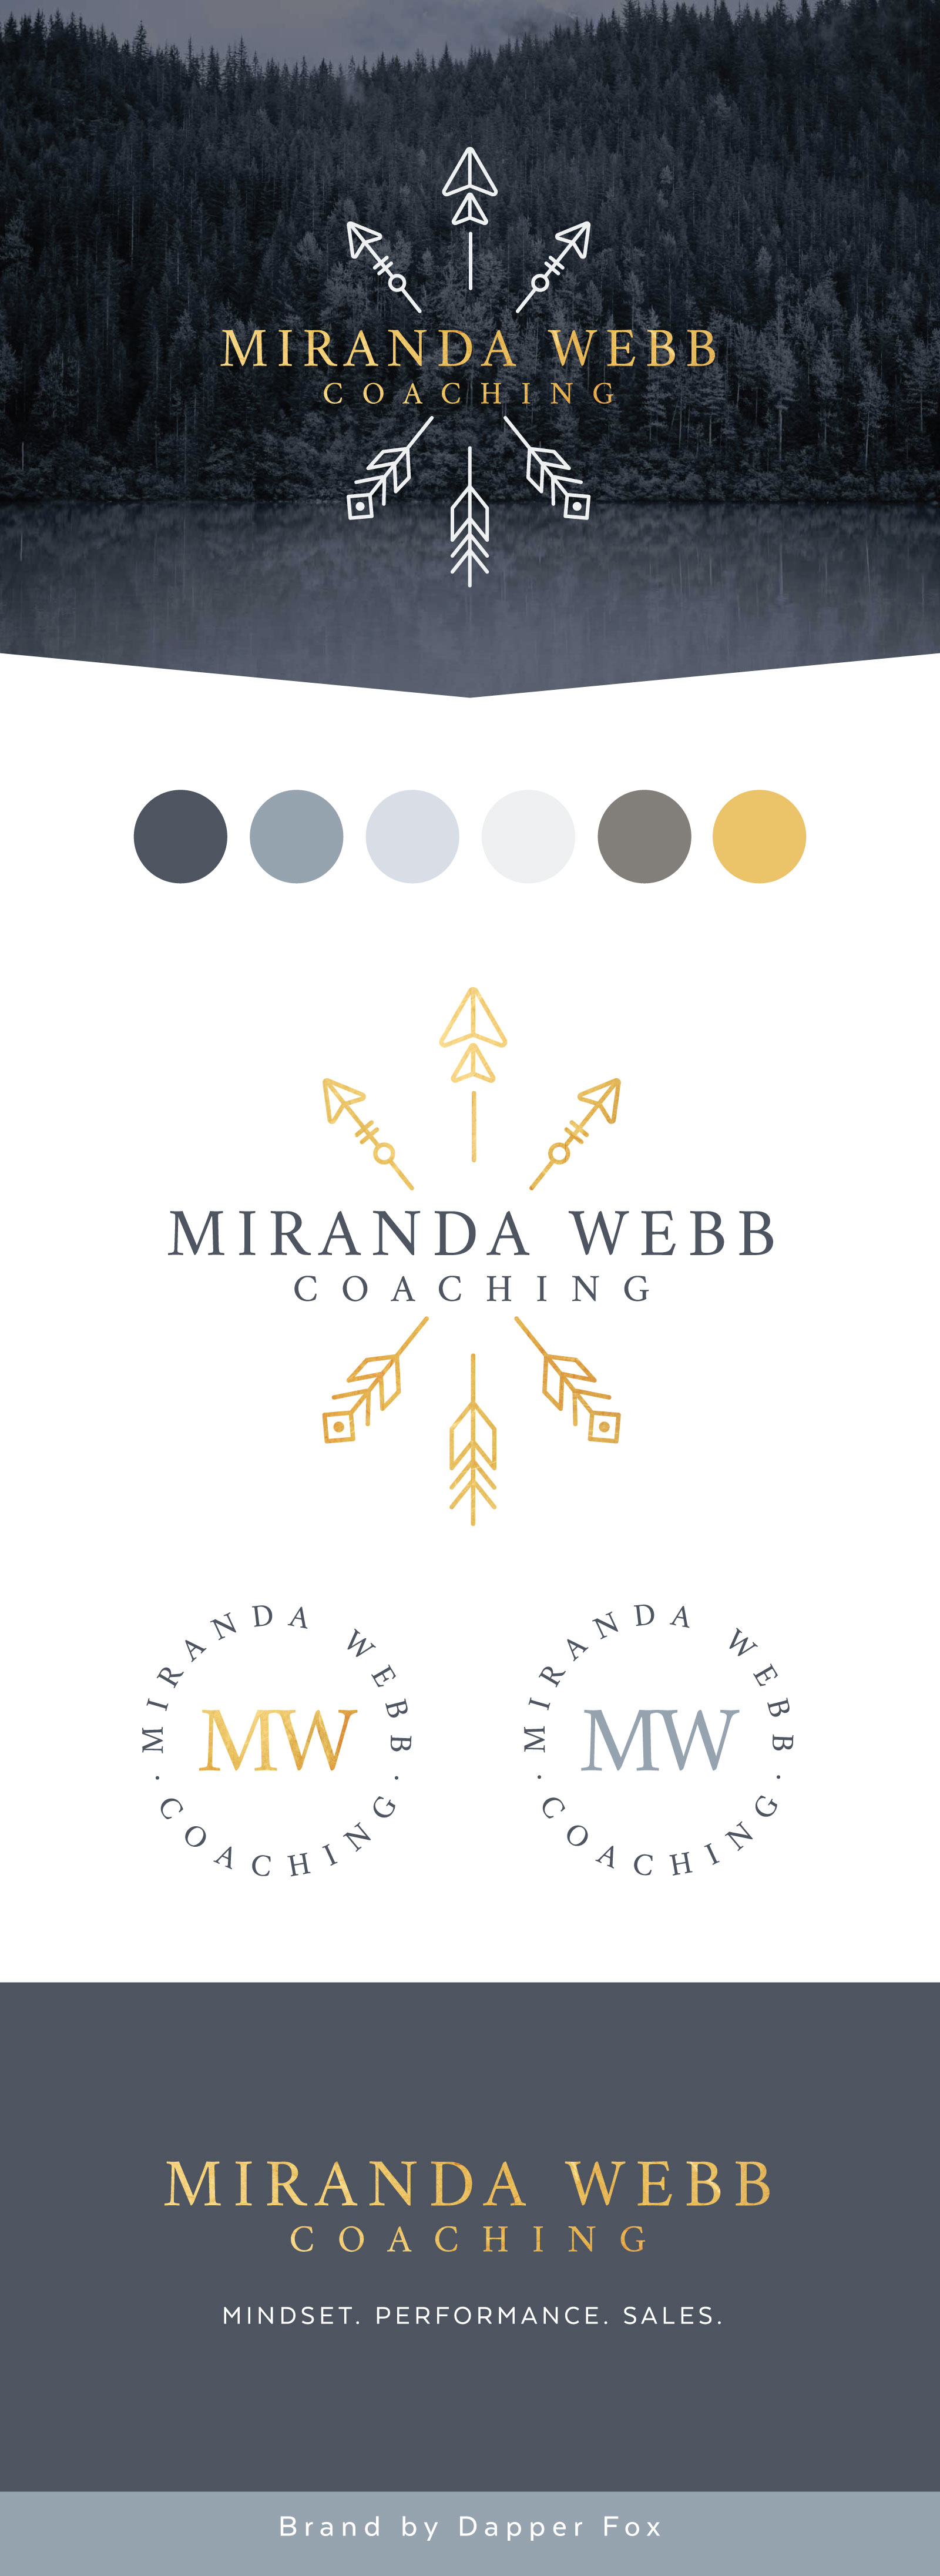 Miranda Webb Coaching Business Coach Logo and Brand Design - Arrow, Gold, Grey Color Scheme Modern Logo Design